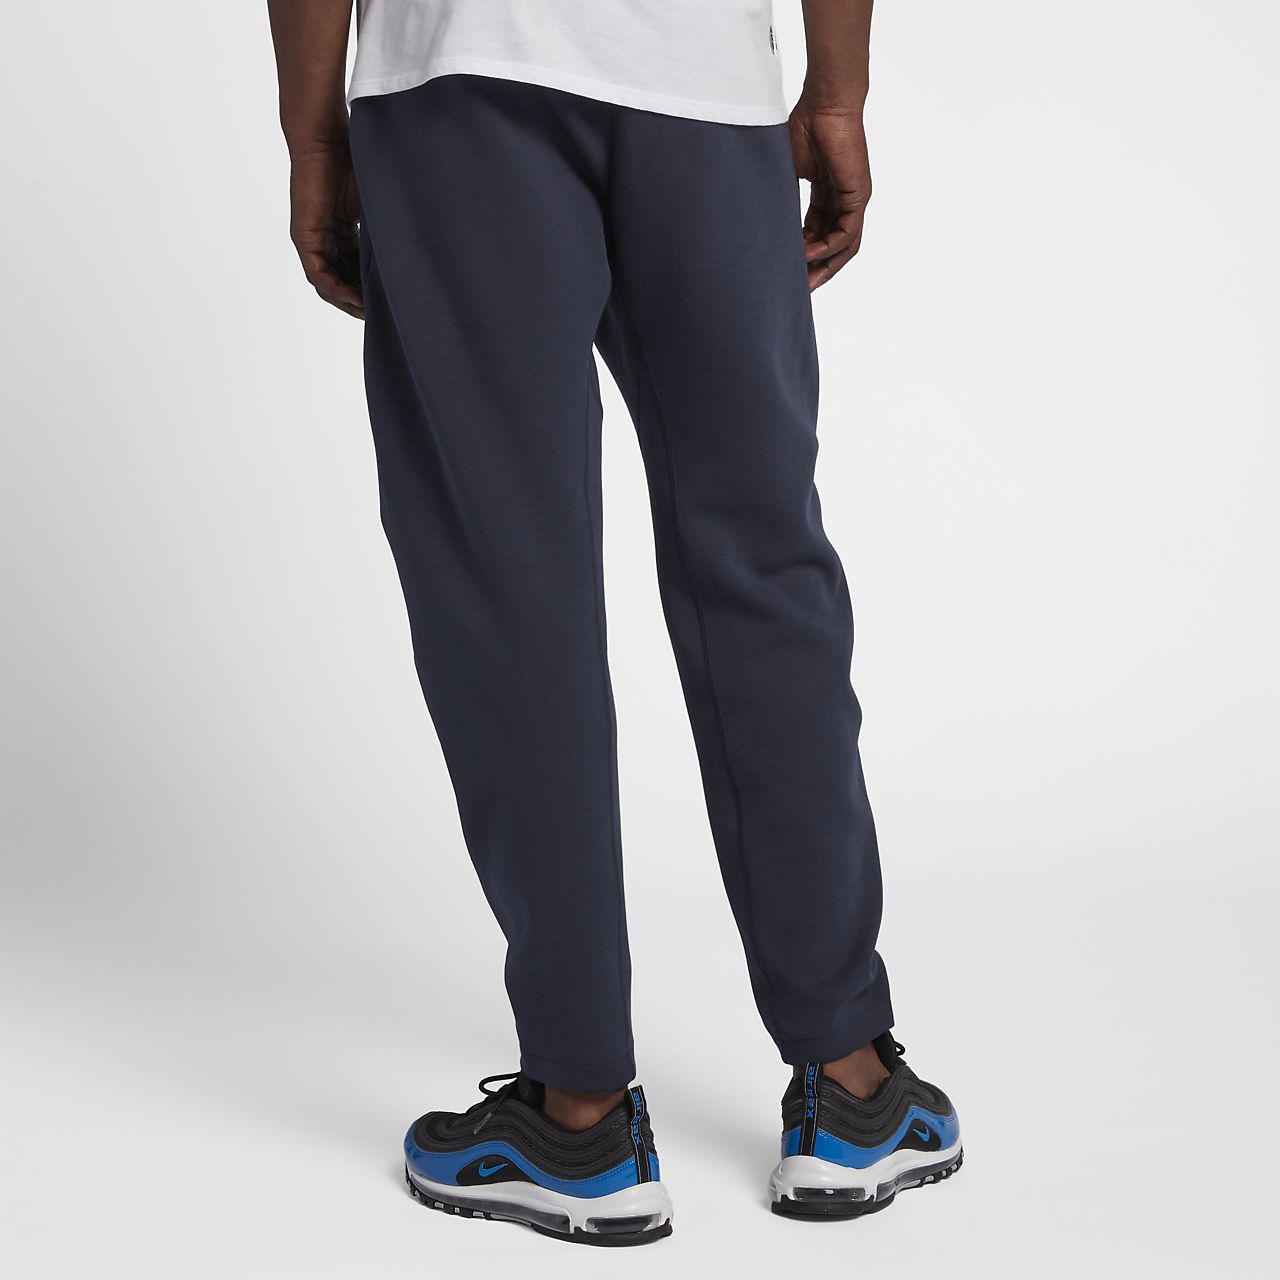 564edd47252074 Nike Sportswear Tech Fleece Men s Trousers. Nike.com AU